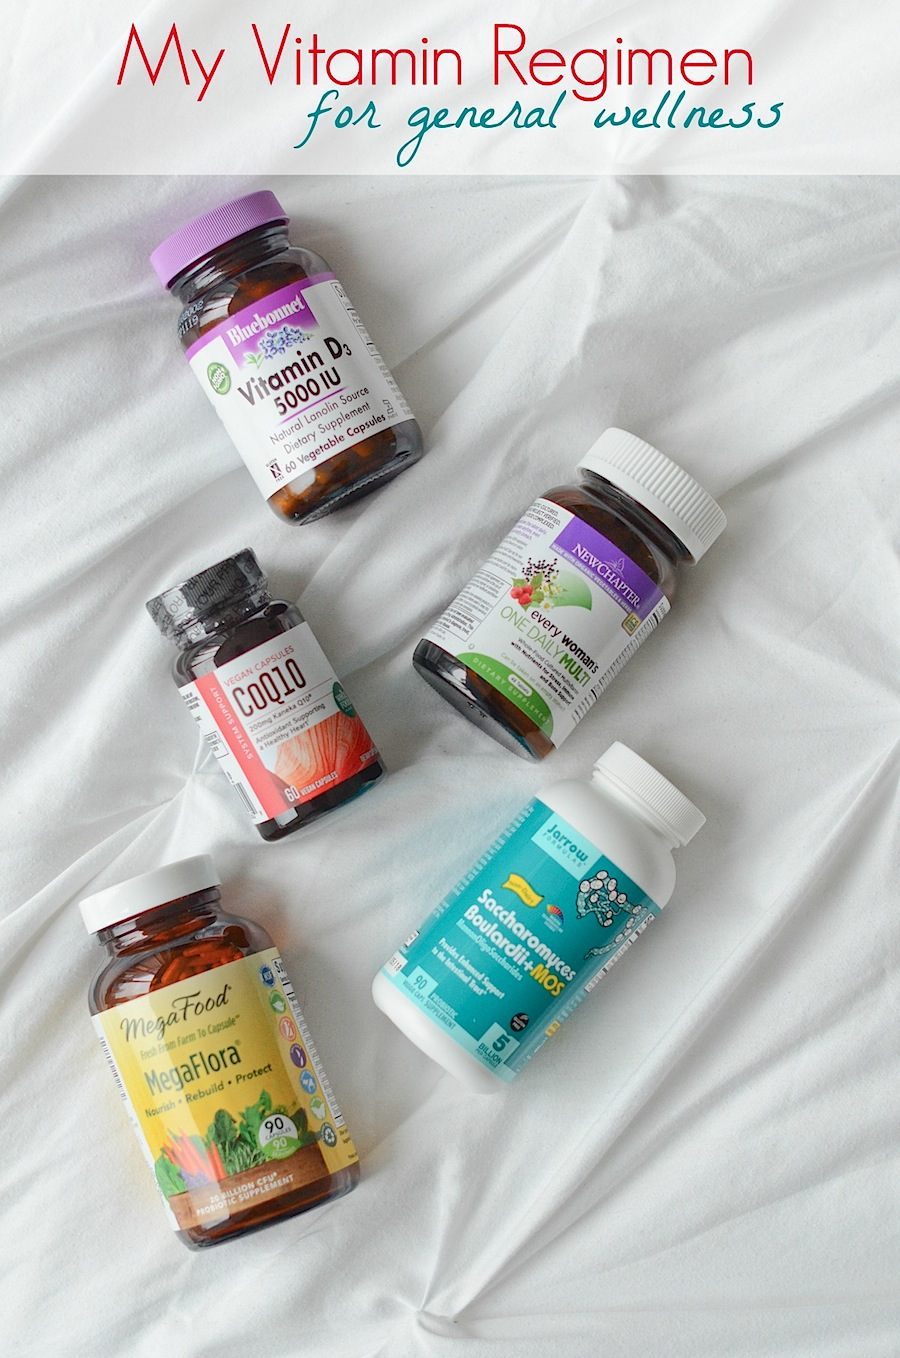 My Vitamin Regimen for General Wellness